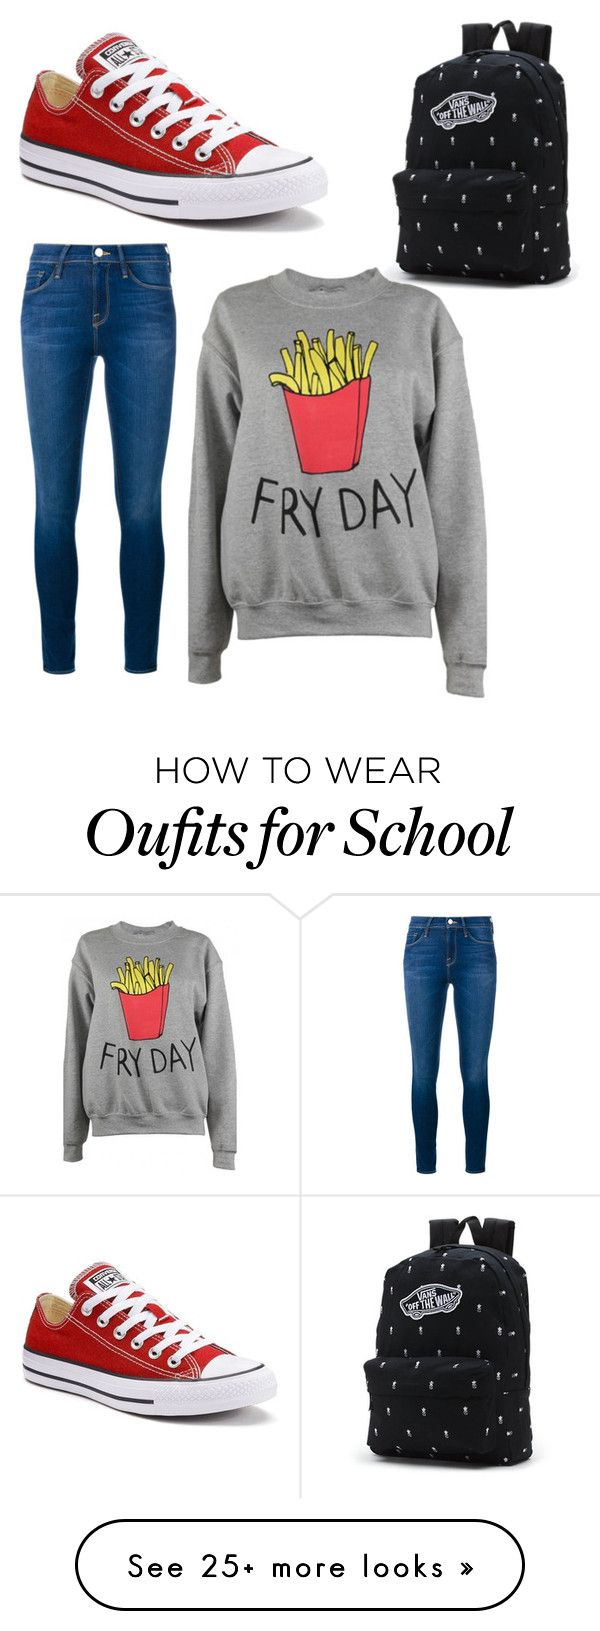 """school"" by rebecayuso on Polyvore featuring Frame Denim, Adolescent Clothing, Converse and Vans"